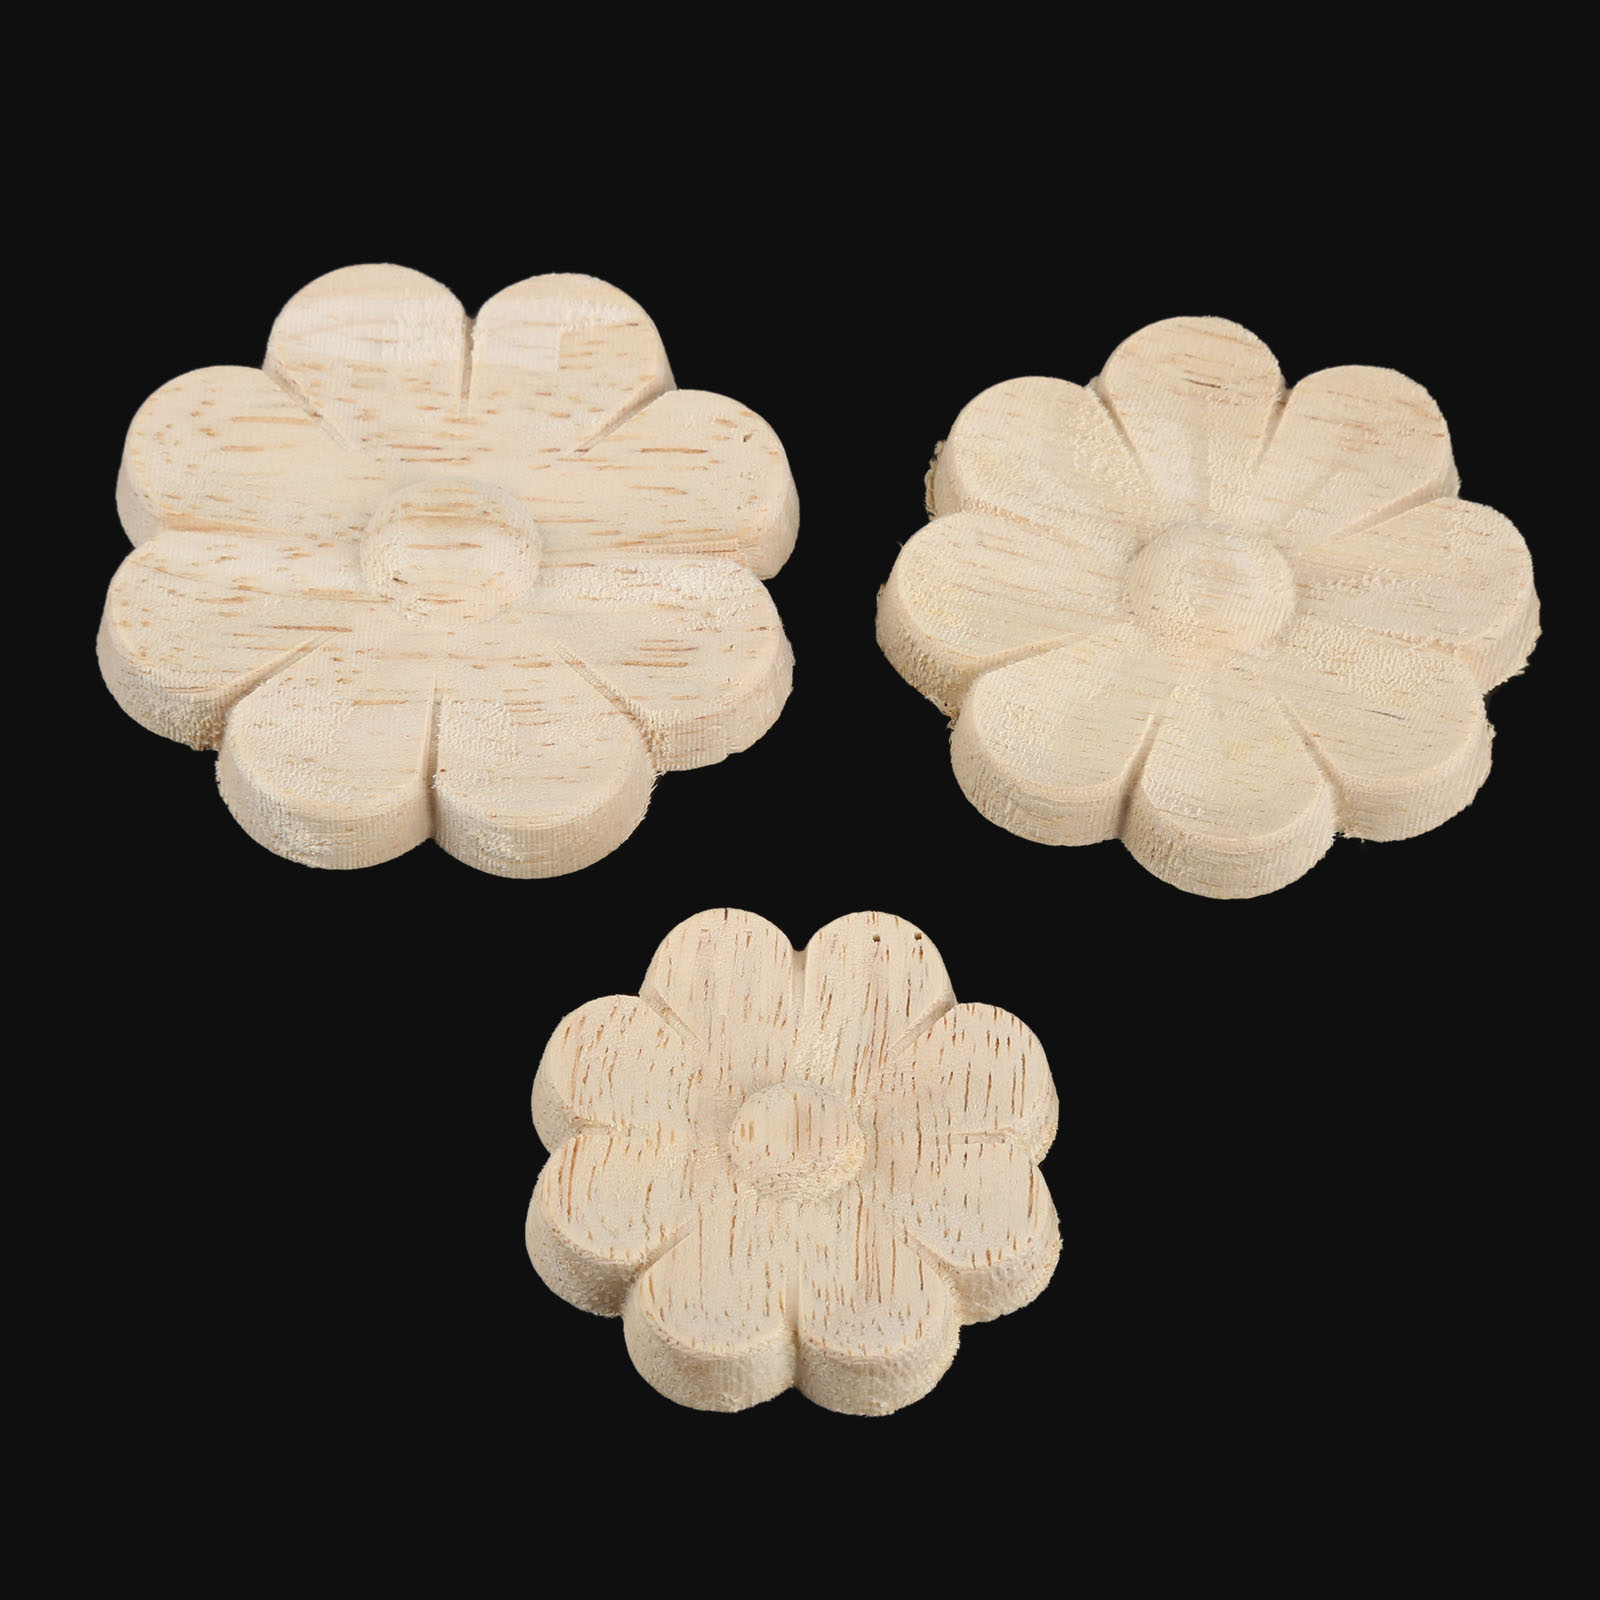 10Pcs 4 5 6cm Floral Wood Carved Decal Corner Appliques Wall Furniture Woodcarving Decorative Wooden Figurines Crafts Home Decor in Figurines Miniatures from Home Garden